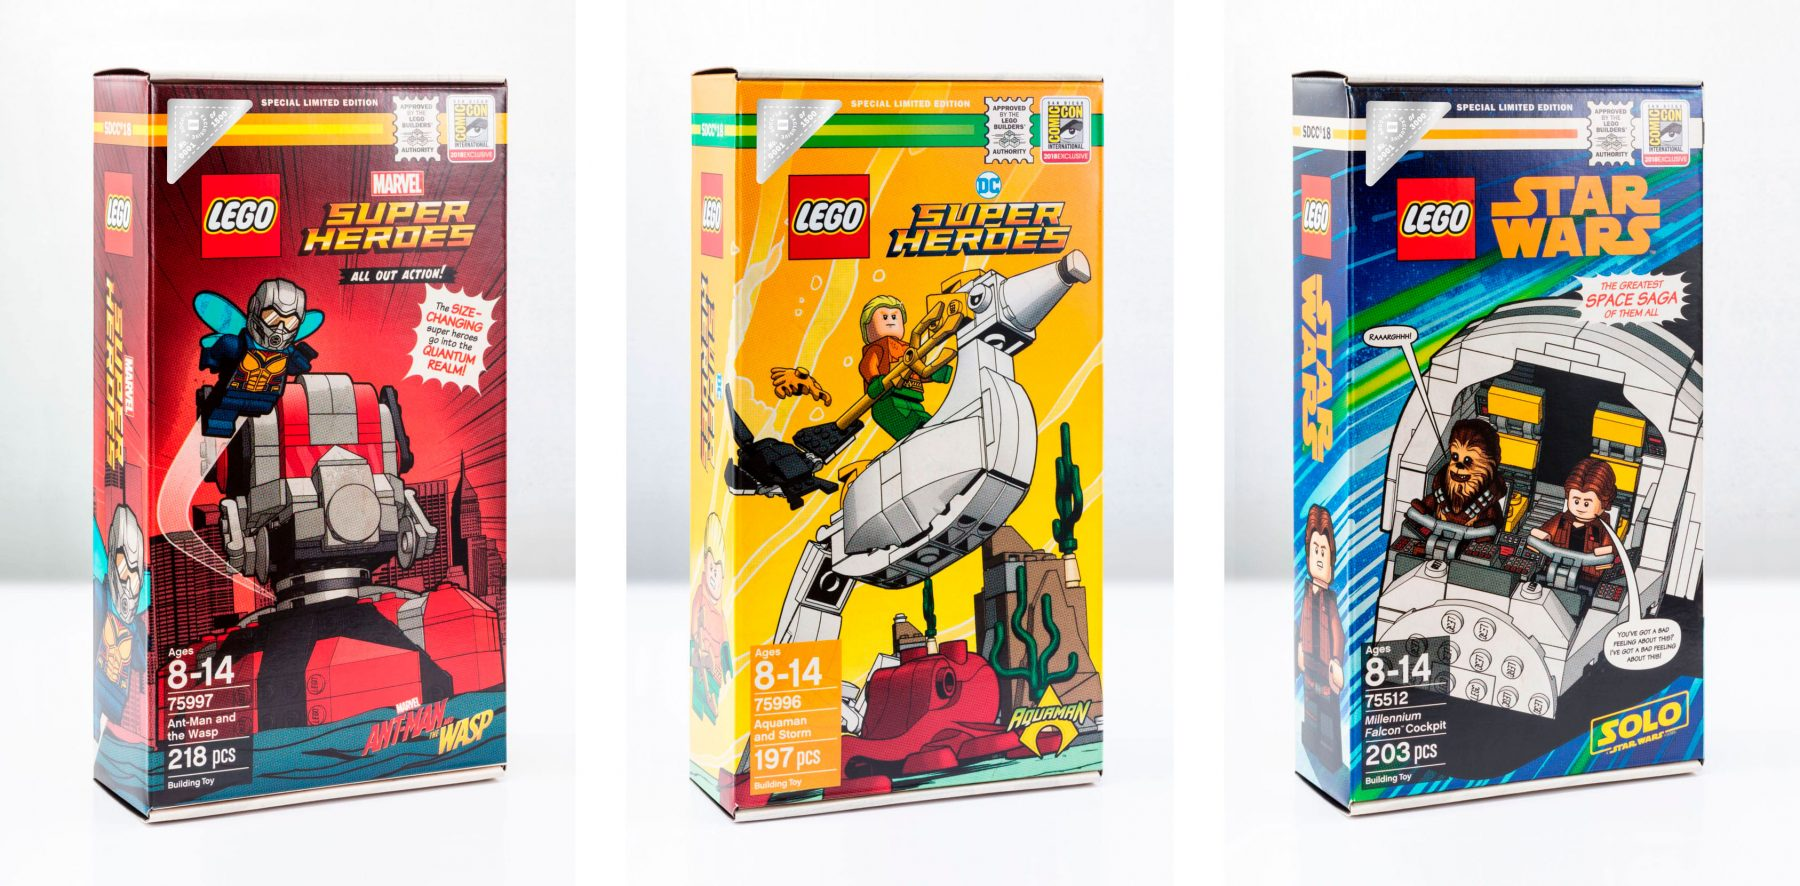 SDCC Exclusives Packaging — Design: MS / Illust: Paul Lee